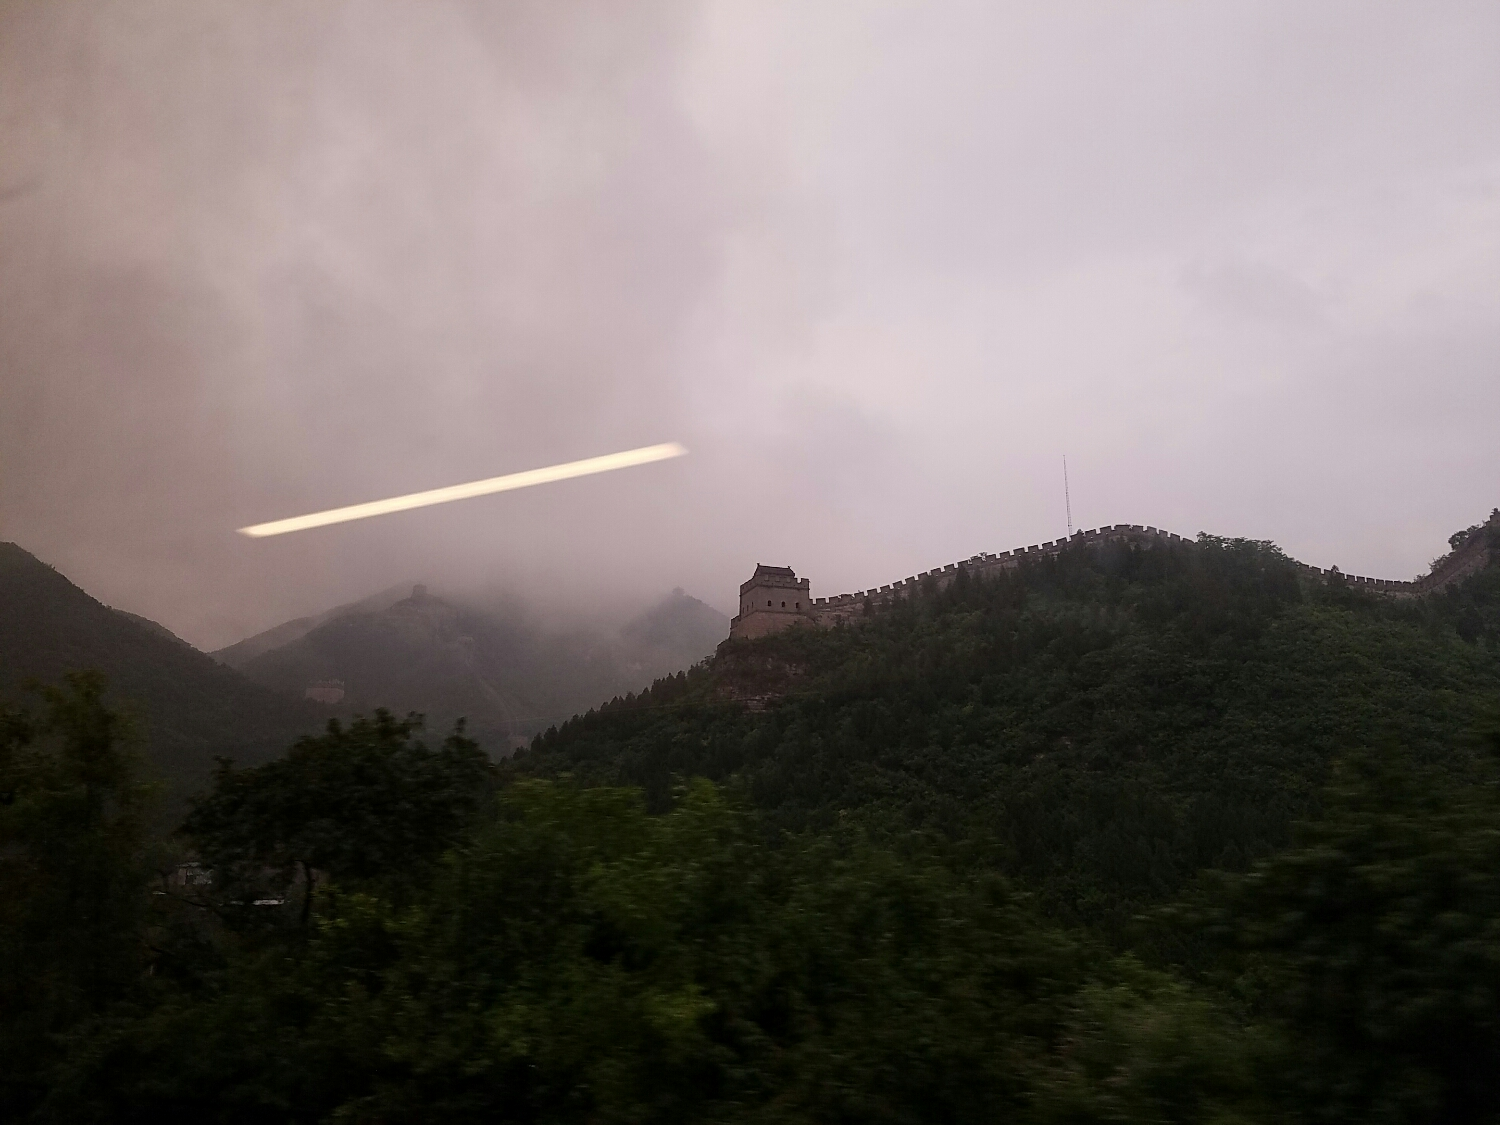 Good night Great Wall.